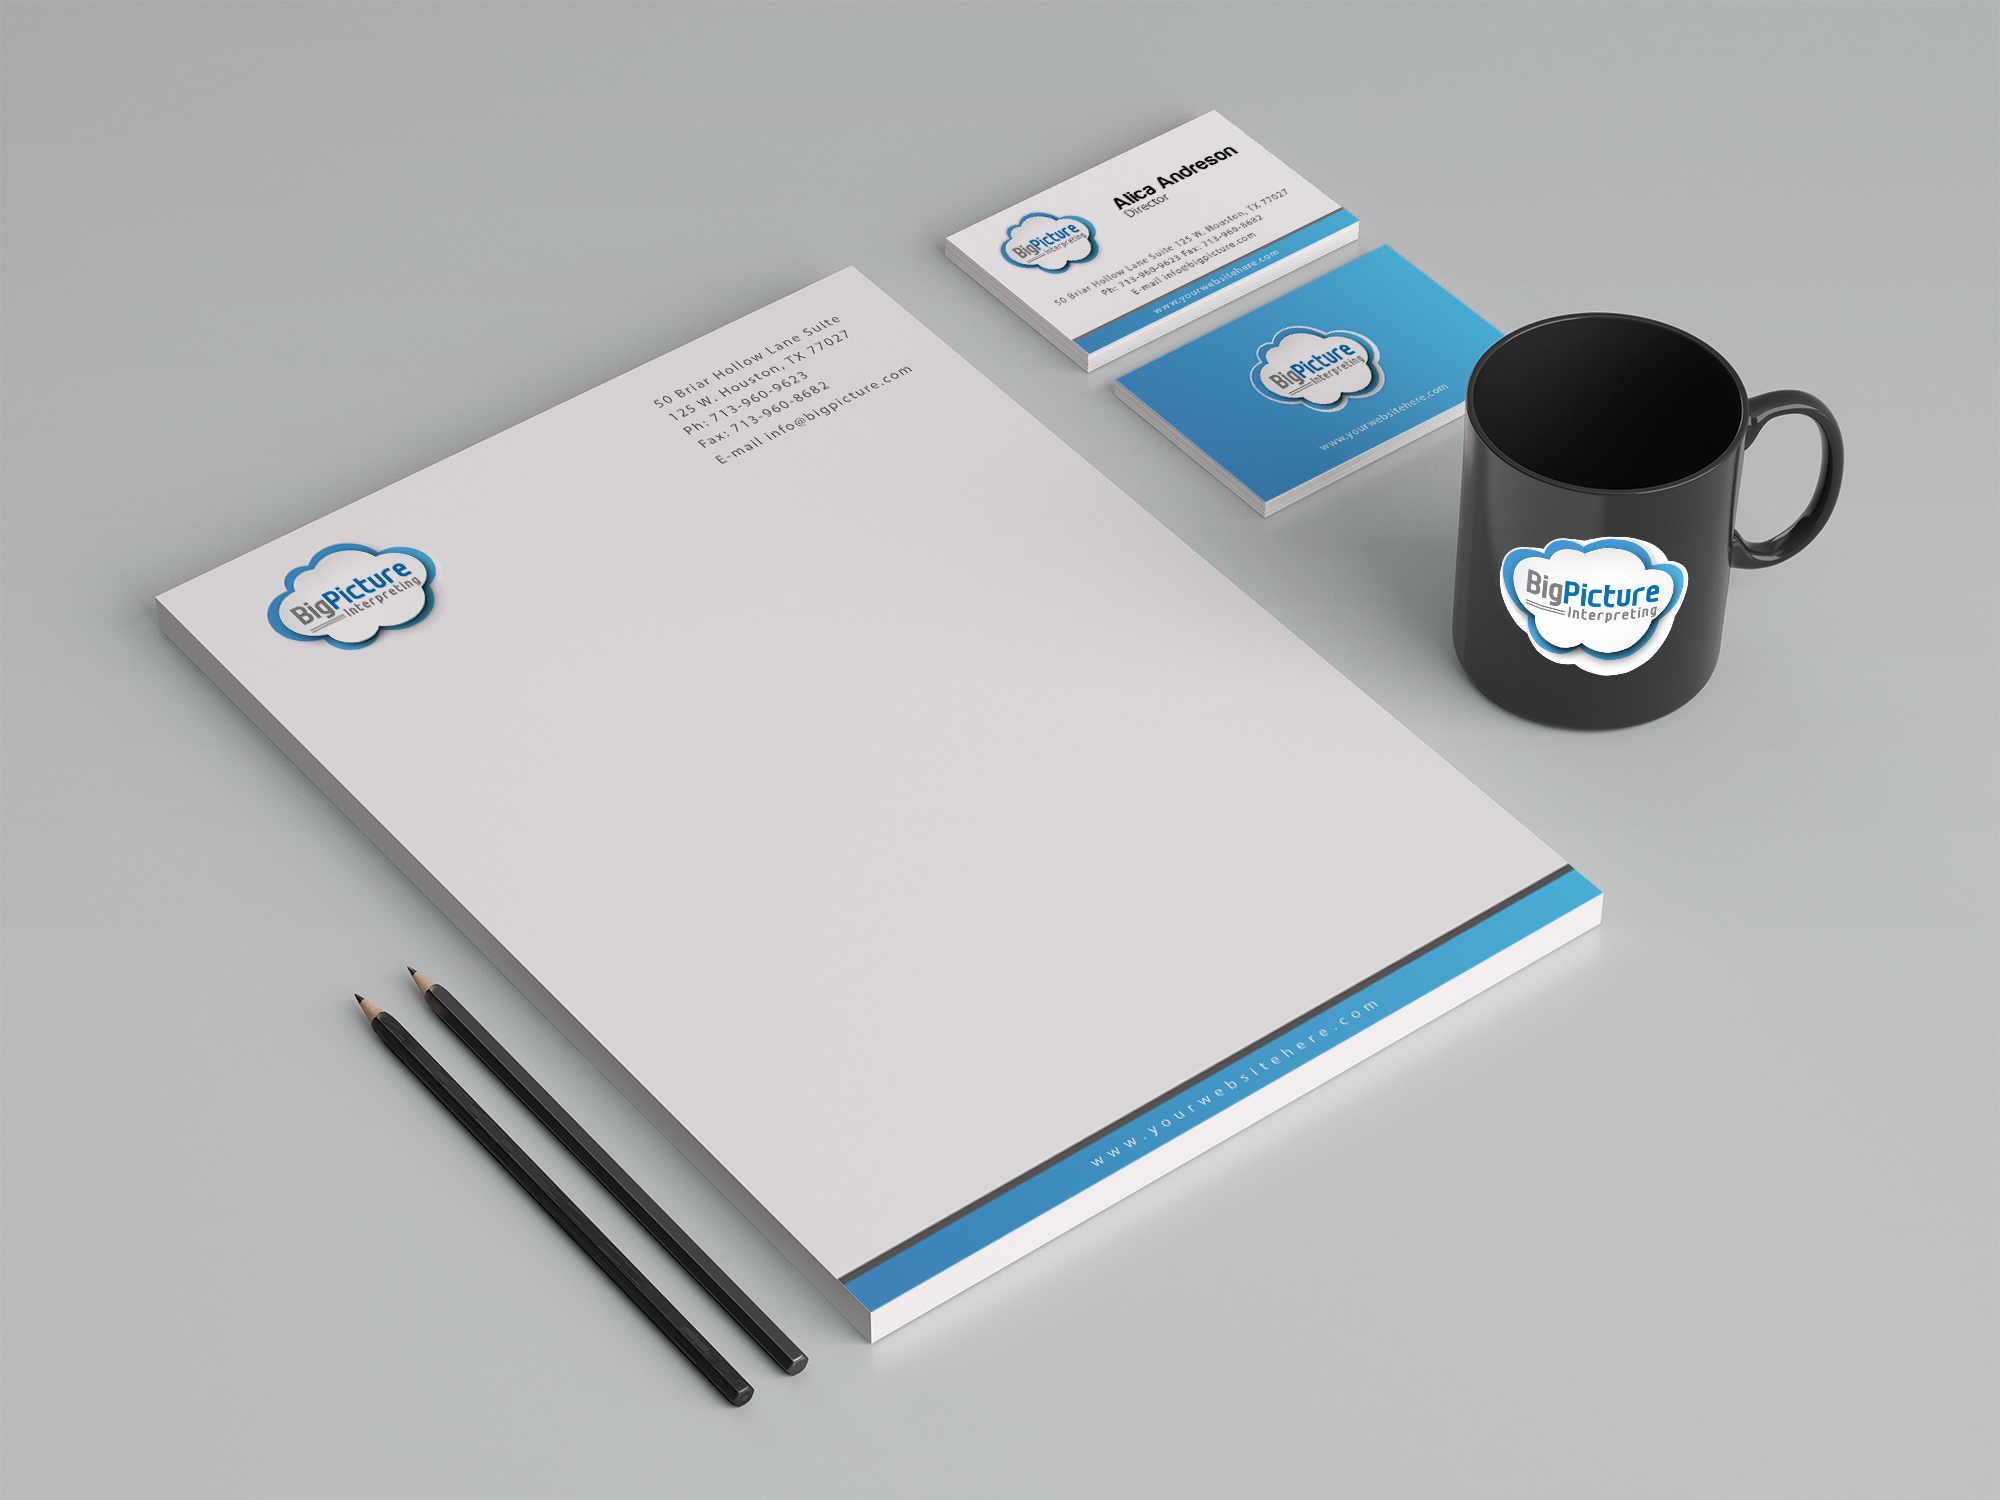 Big-Picture-stationary.jpg